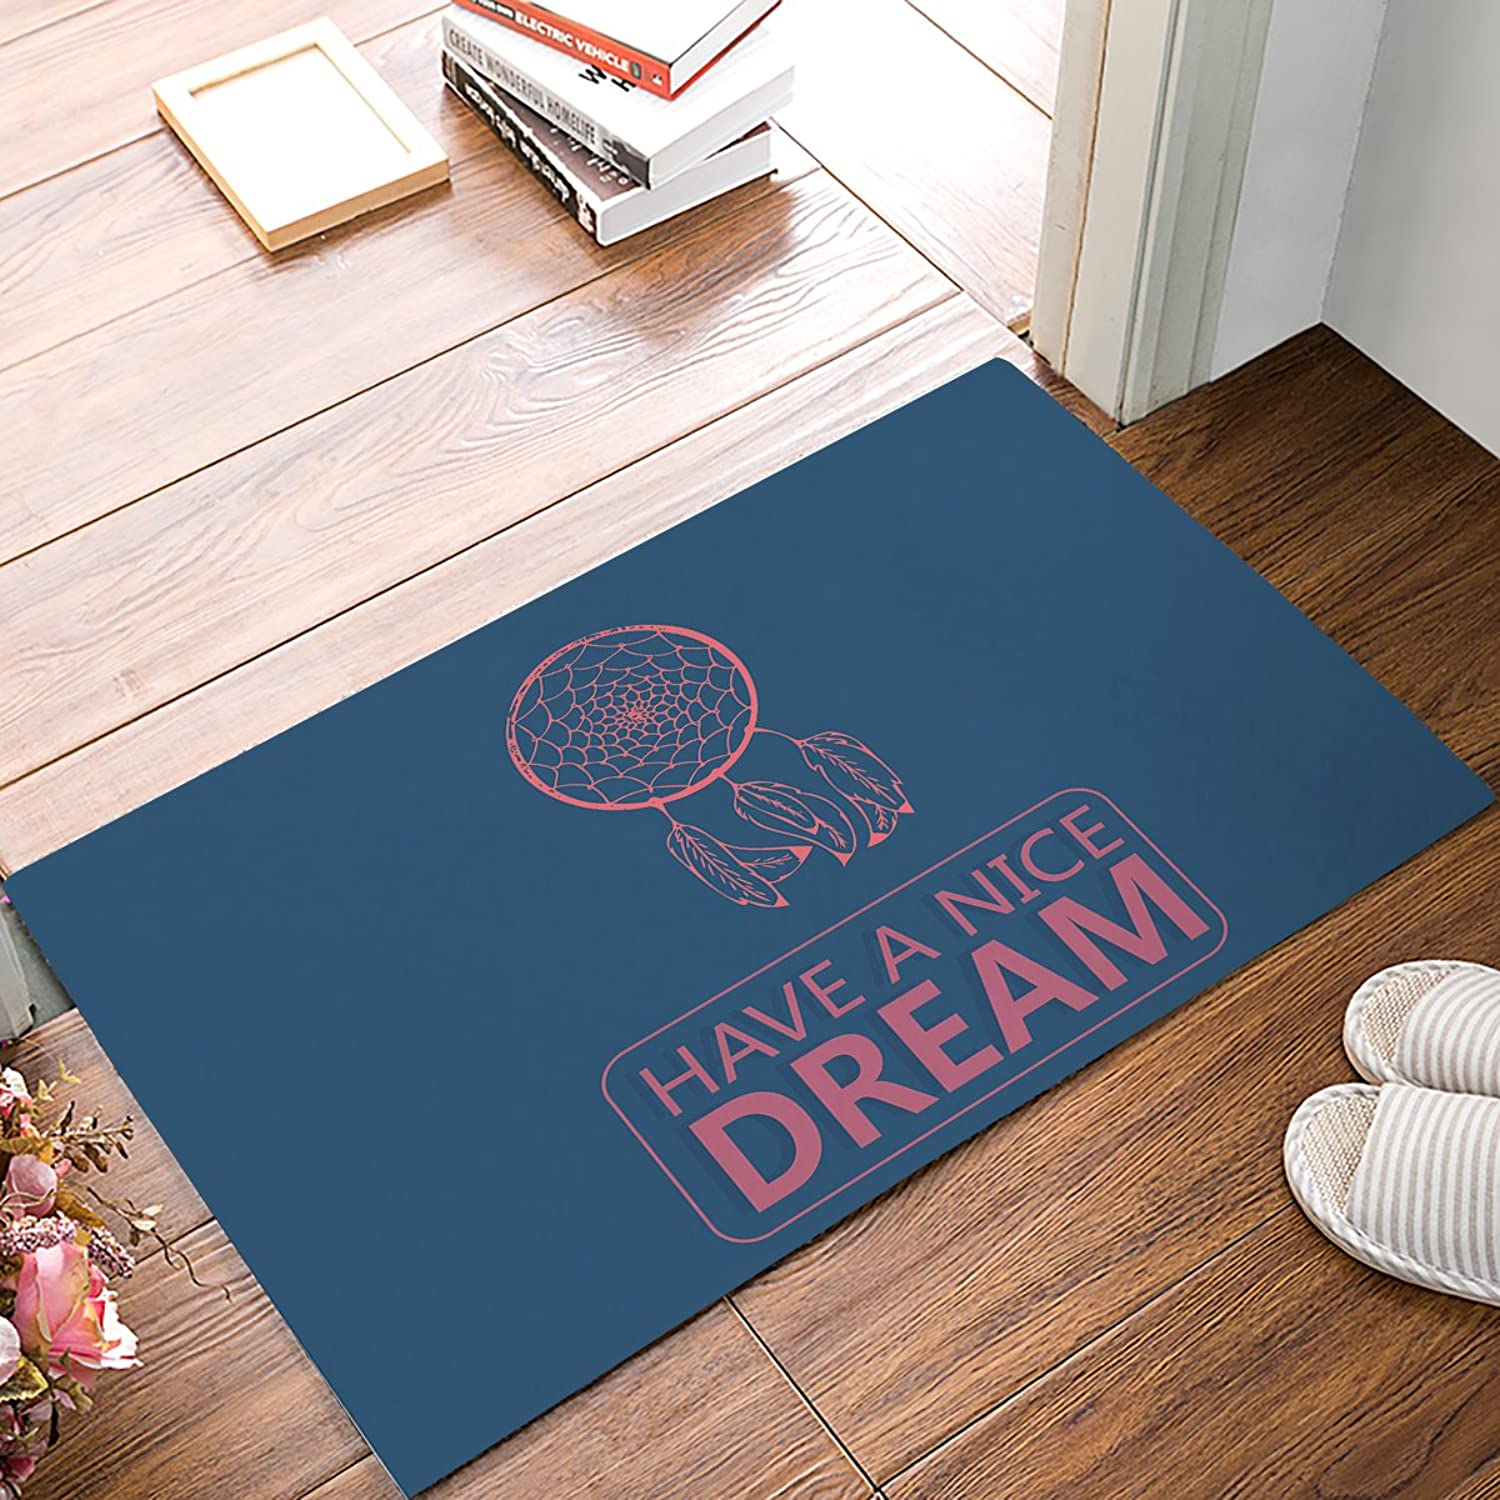 Non-Slip Door Mat Entrance Rug Rectangle Absorbent Moisture Floor Carpet Indoor Outdoor Dreamcatcher, Have a Nice Dream Text Pattern Doormat 20x31.5 inch